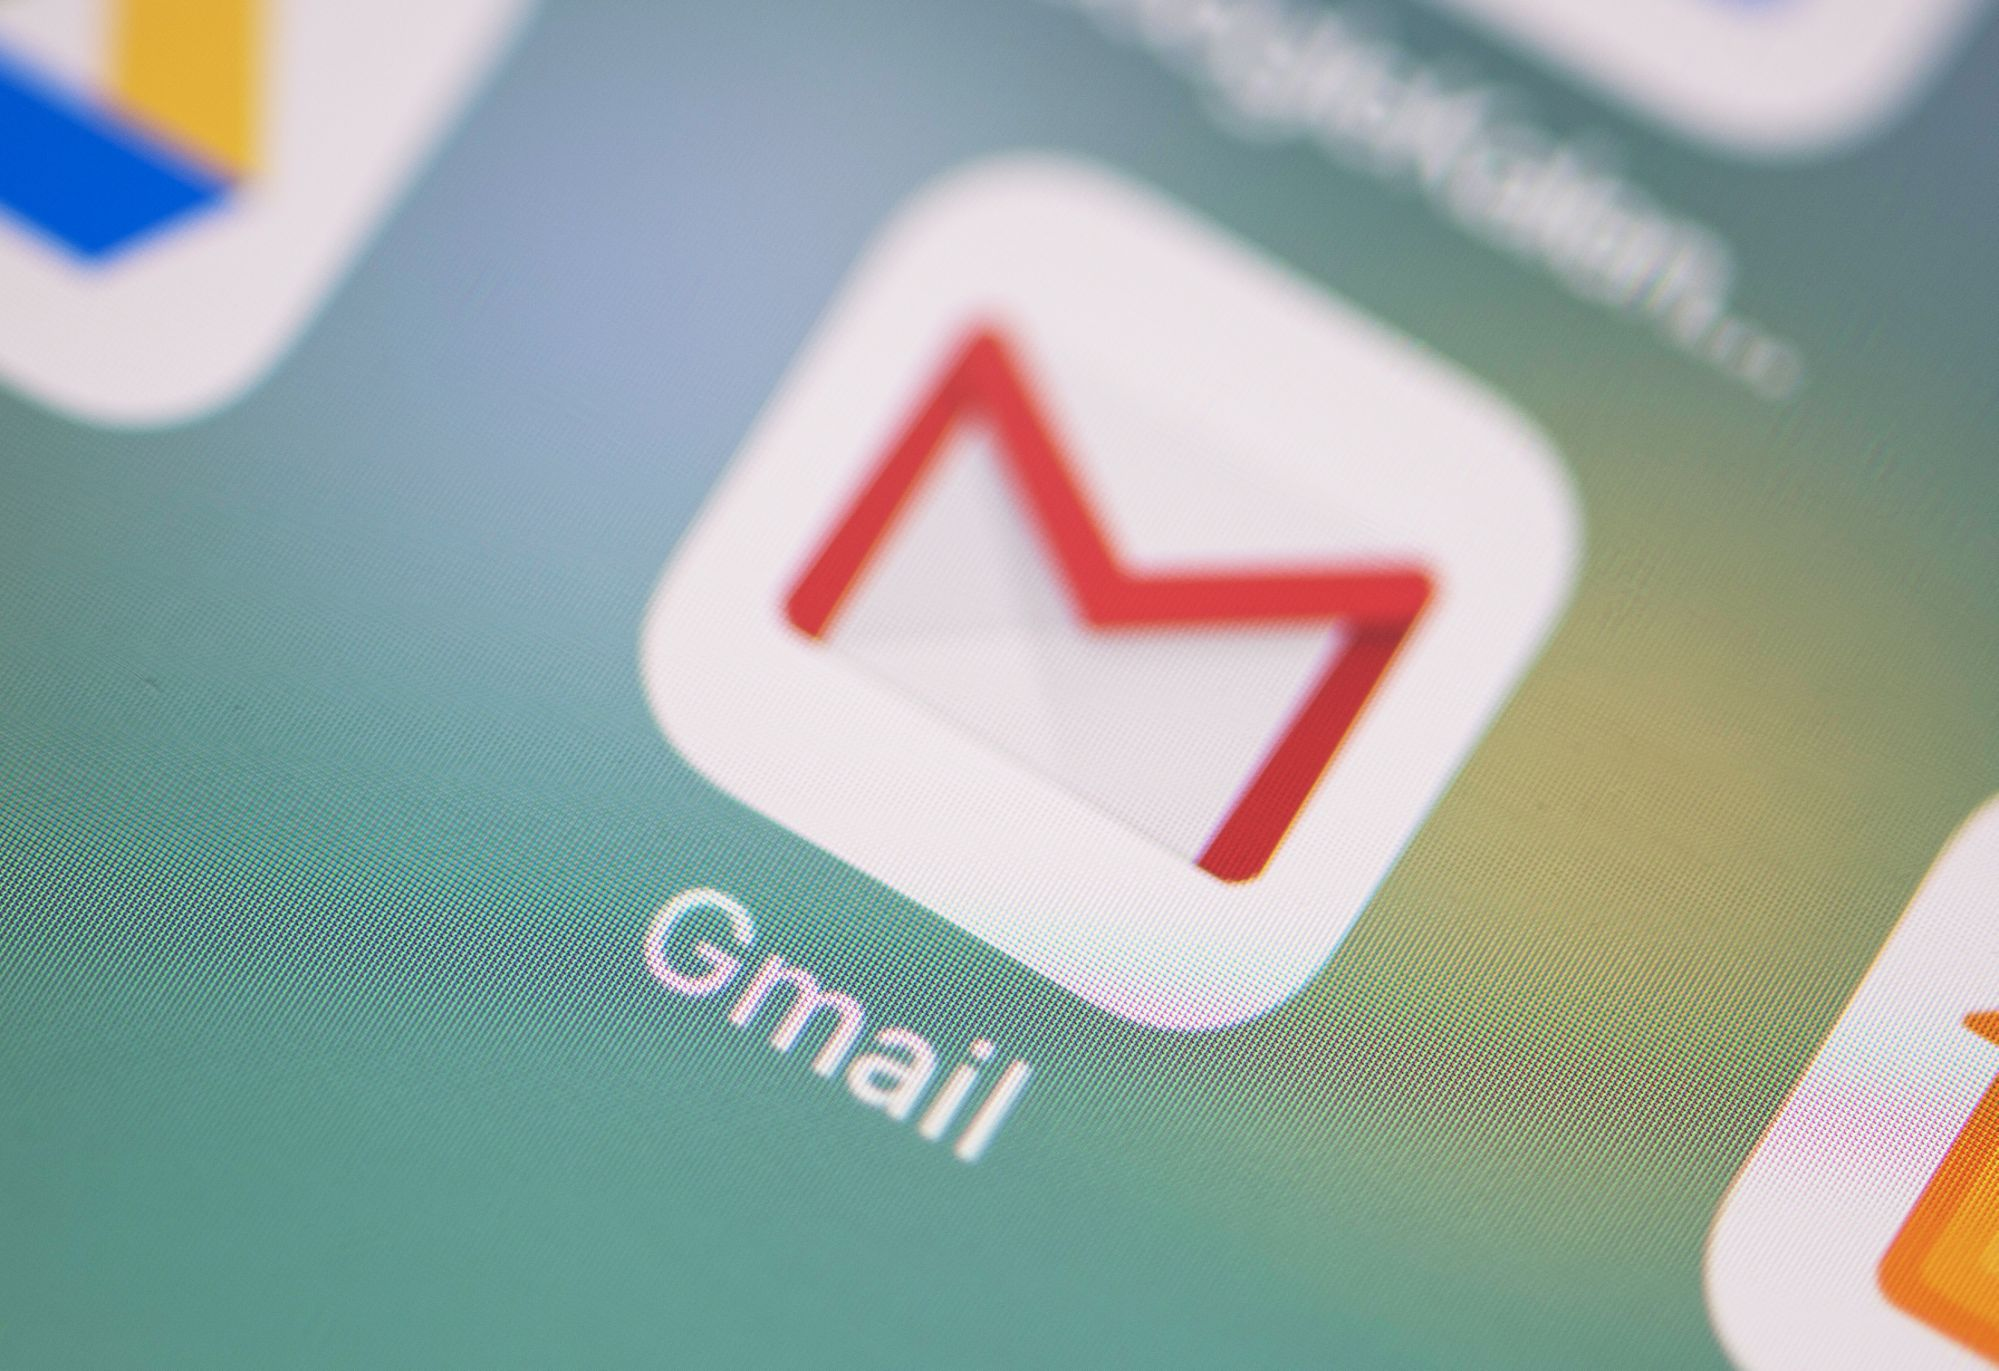 YouTube, Google, and Gmail services are restored after a global crash